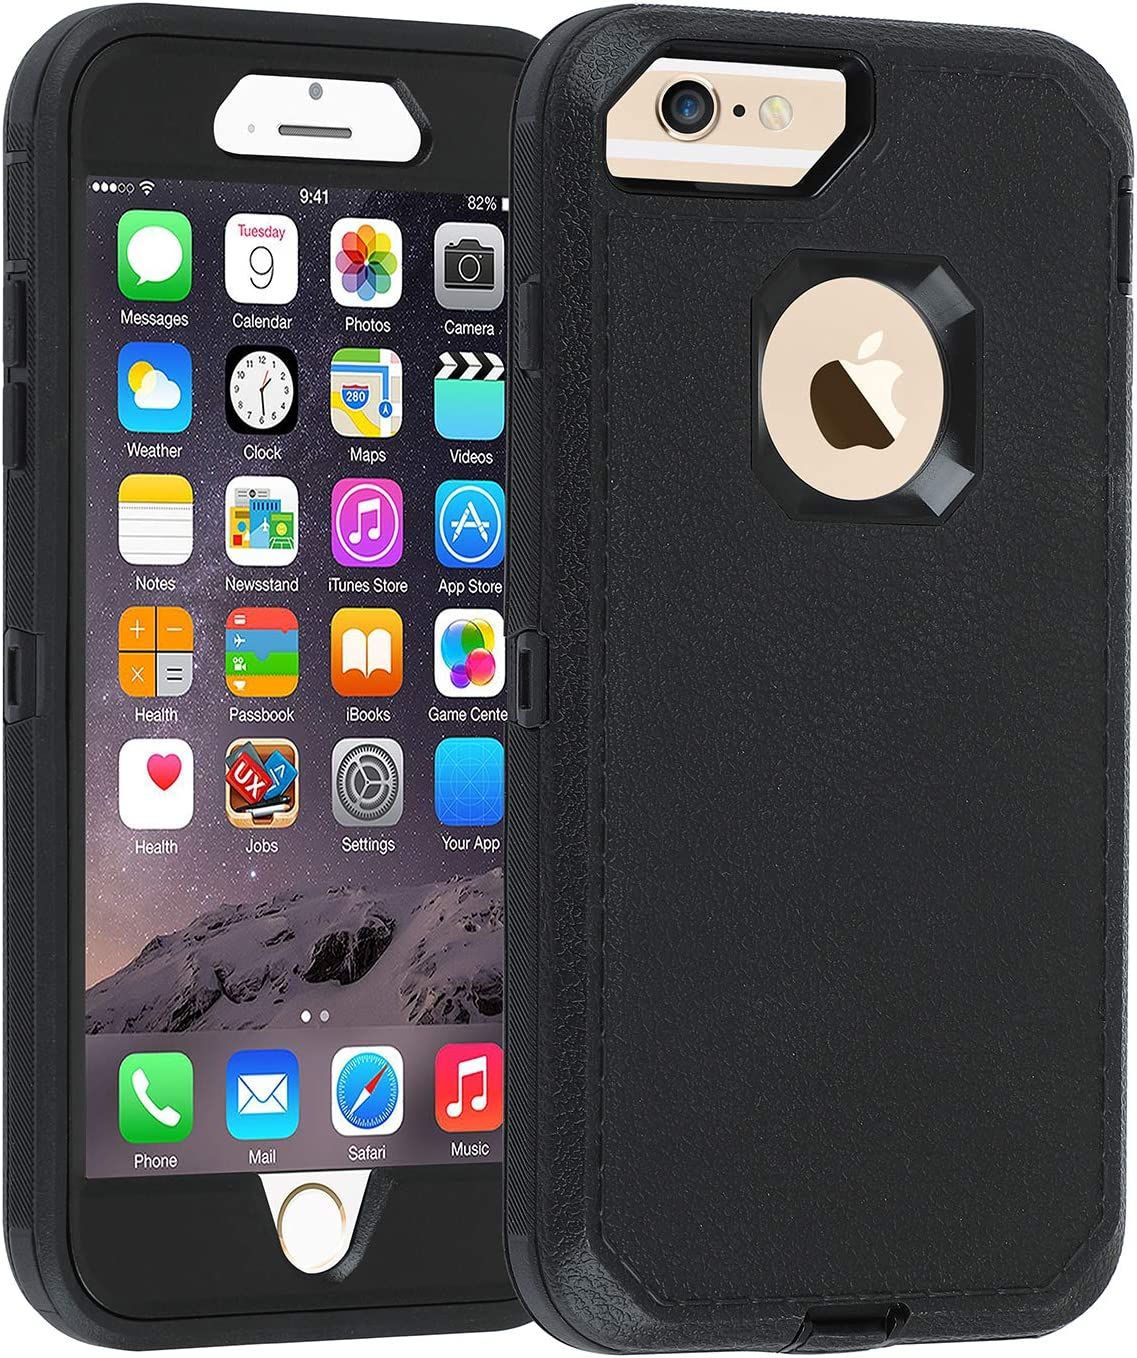 Amazon Com Co Goldguard Case For Iphone 6 6s Heavy Duty Litchi Pattern Series 3 In 1 Durable Cover With With Screen Bumper Shockproof Drop Proof Shell Case For Apple Iphone 6 6s 4 7 Inch Black